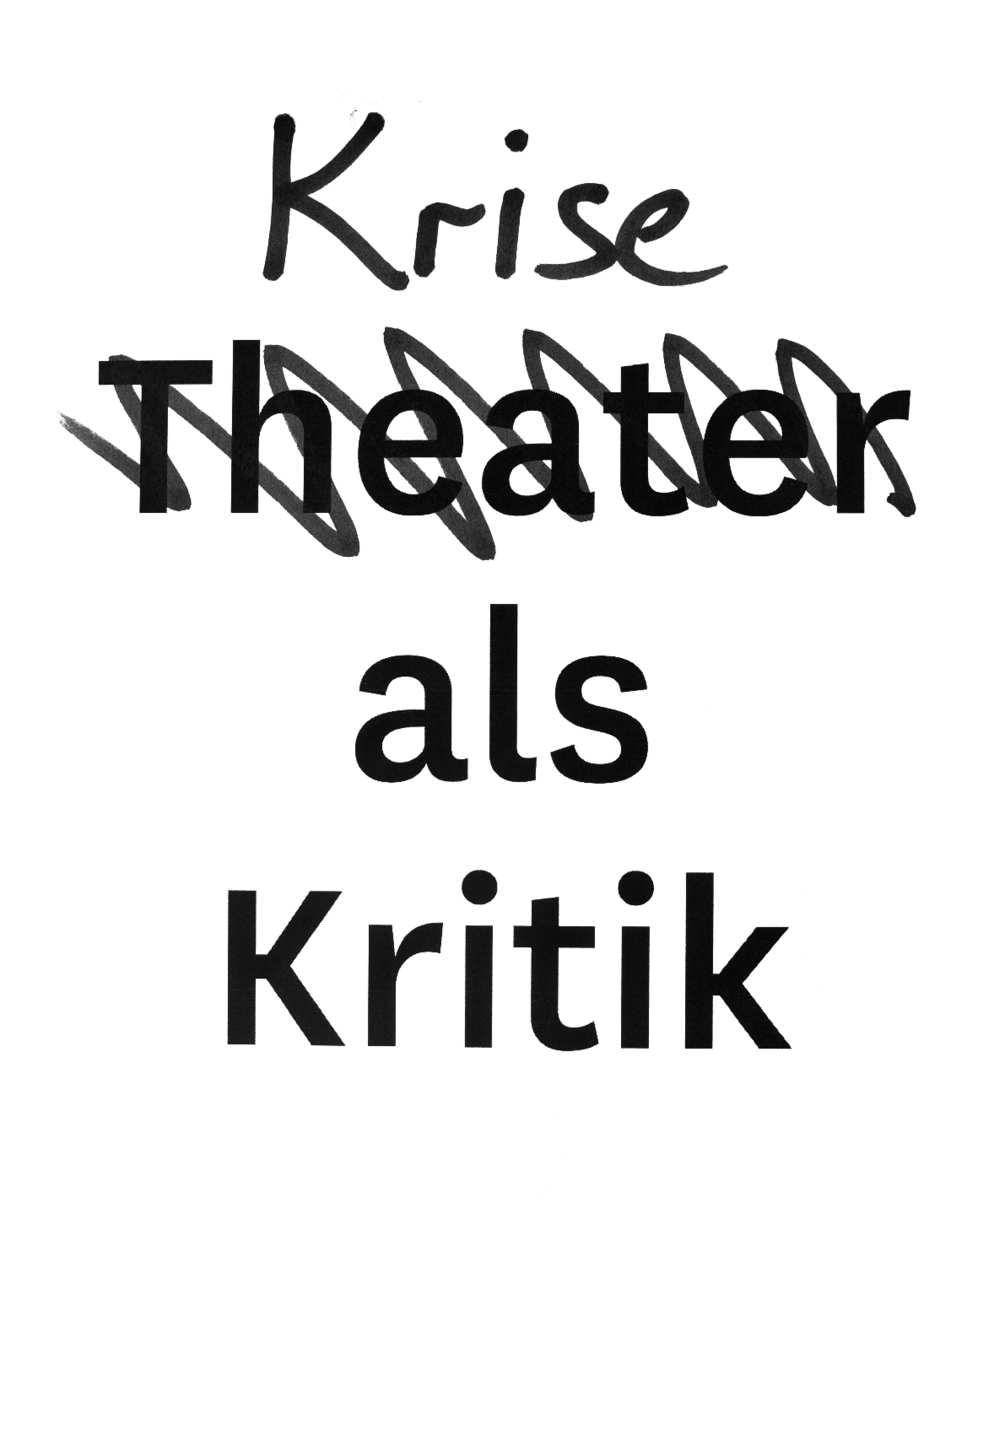 theater-as-critique-slip-28-1005x1435px